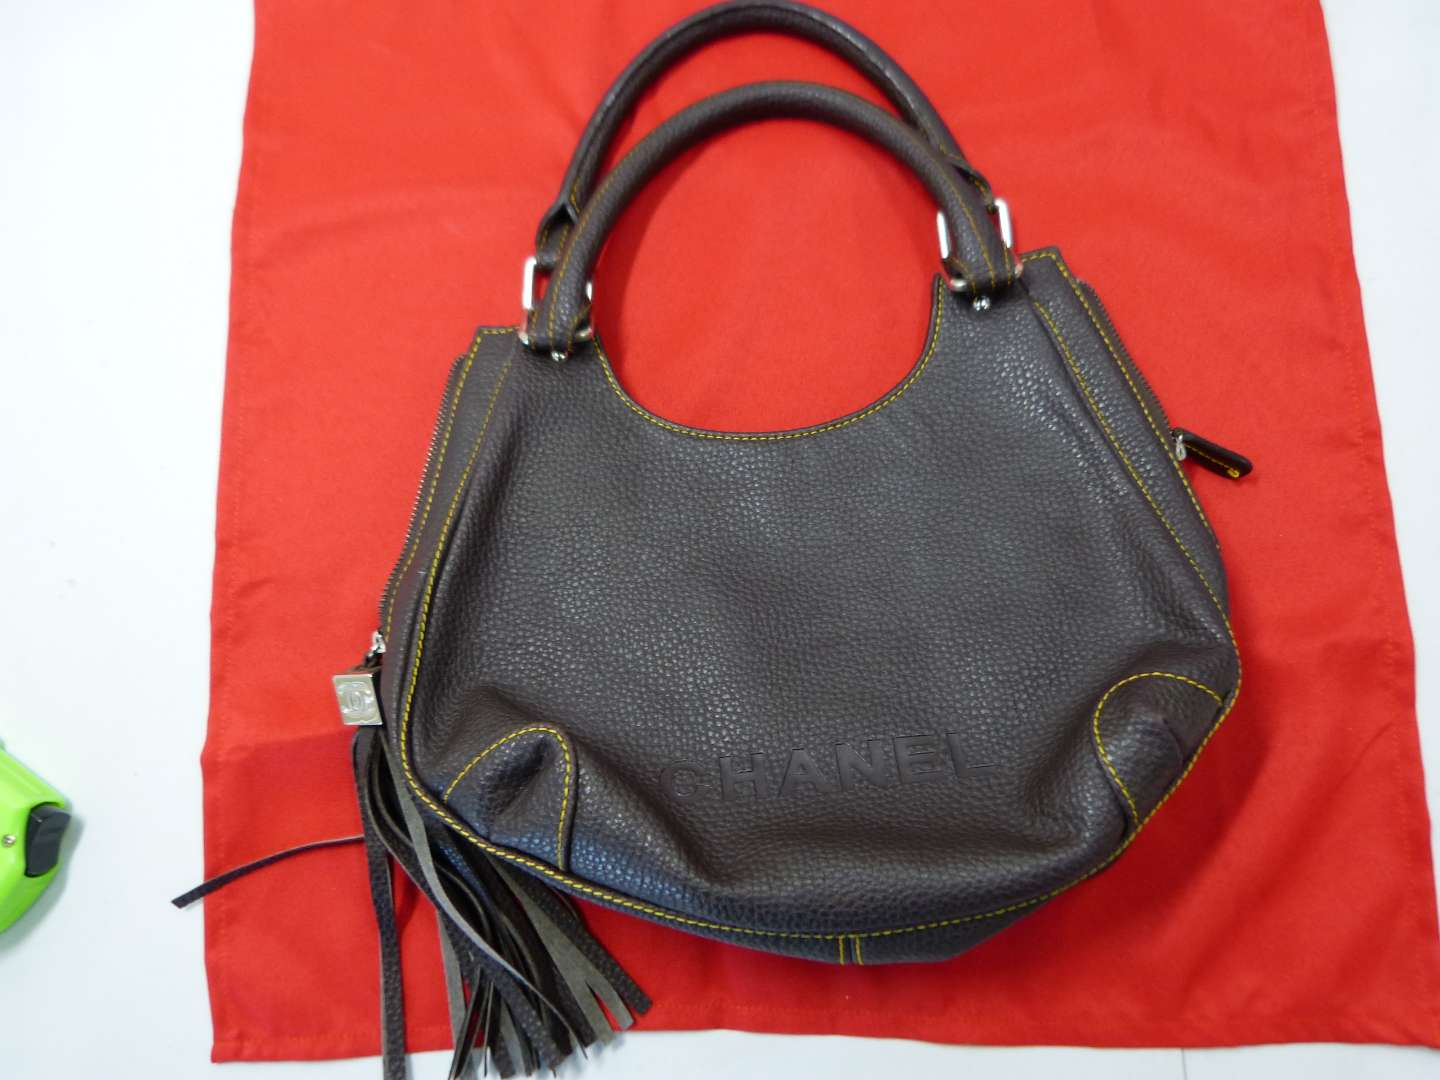 Lot # 206  I have NO CLUE on the bag (looks nice but right now it's just a leather bag BID accordingly)